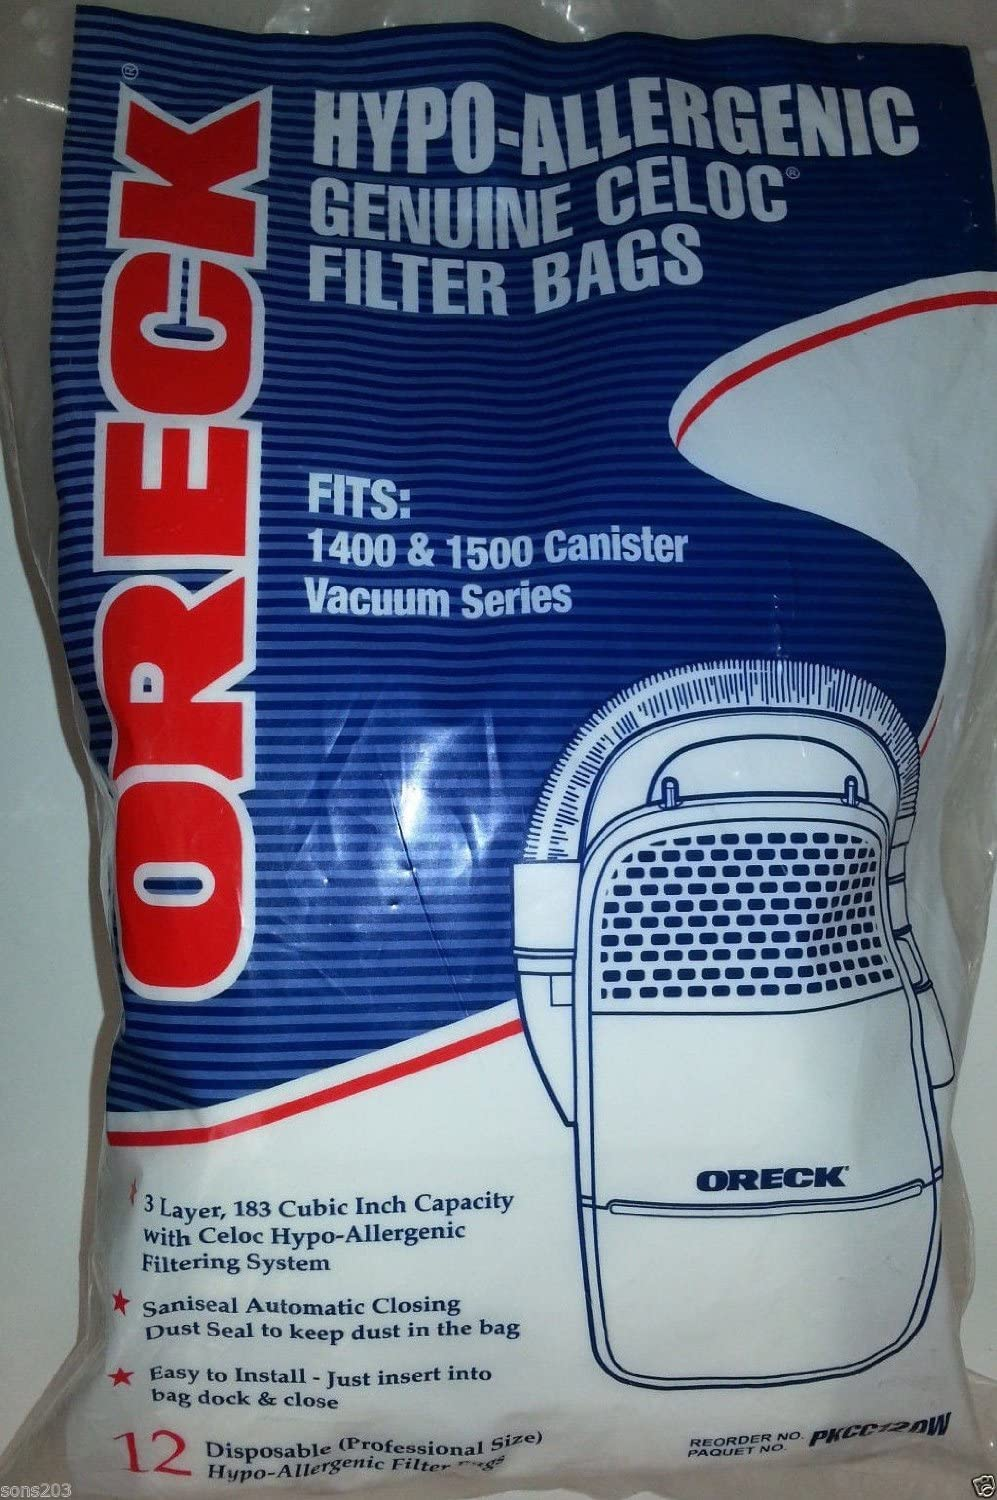 12-Pack Oreck Edge Canister Hypo-Allergenic Vacuum Bags - PKCC12DW Fits 1400 & 1500 Series